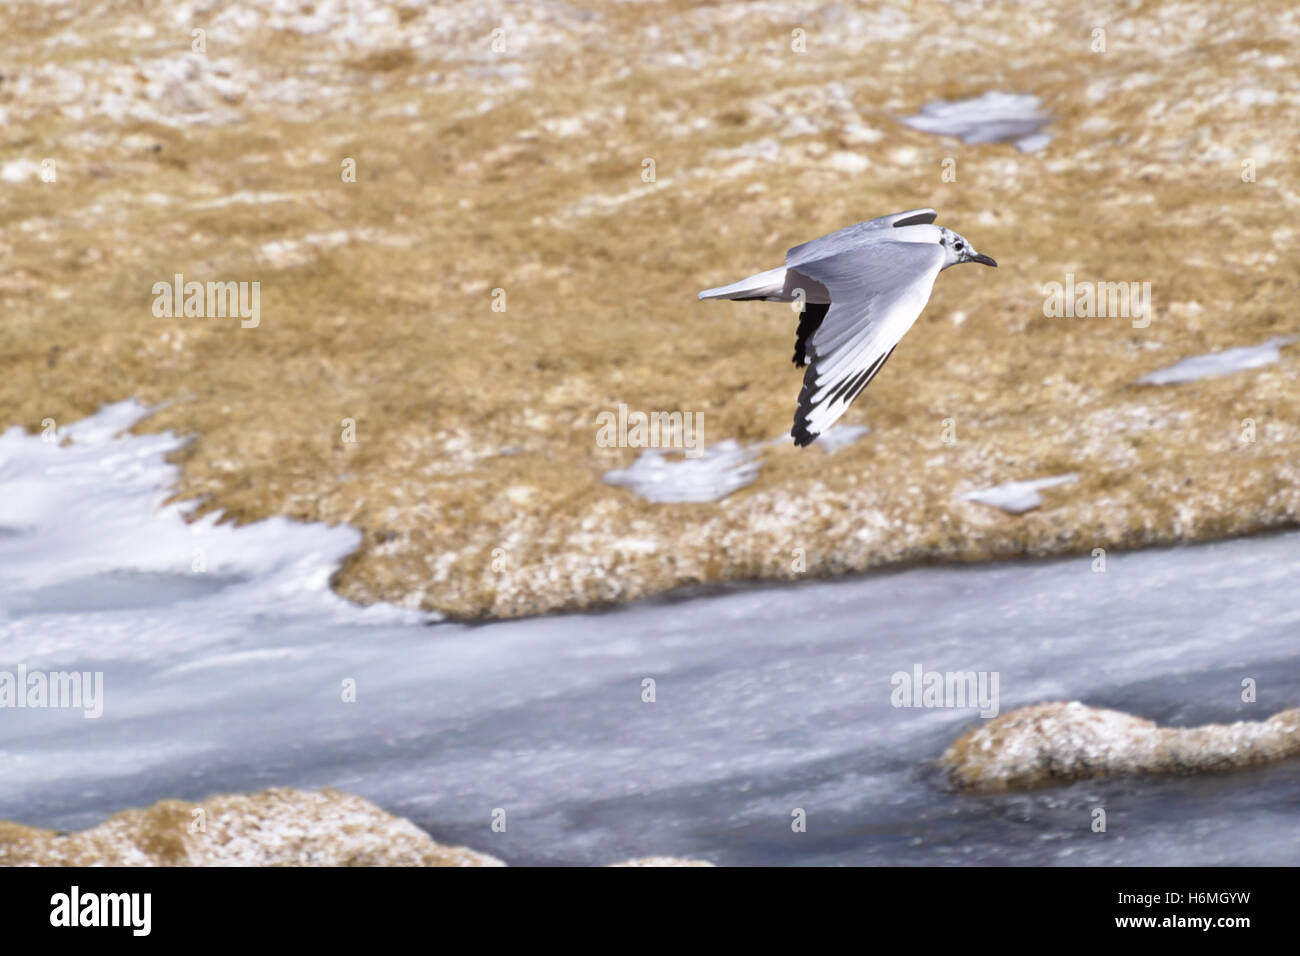 Andean gull (Chroicocephalus serranus) flying over an icy lake in Atacama desert, Chile. - Stock Image